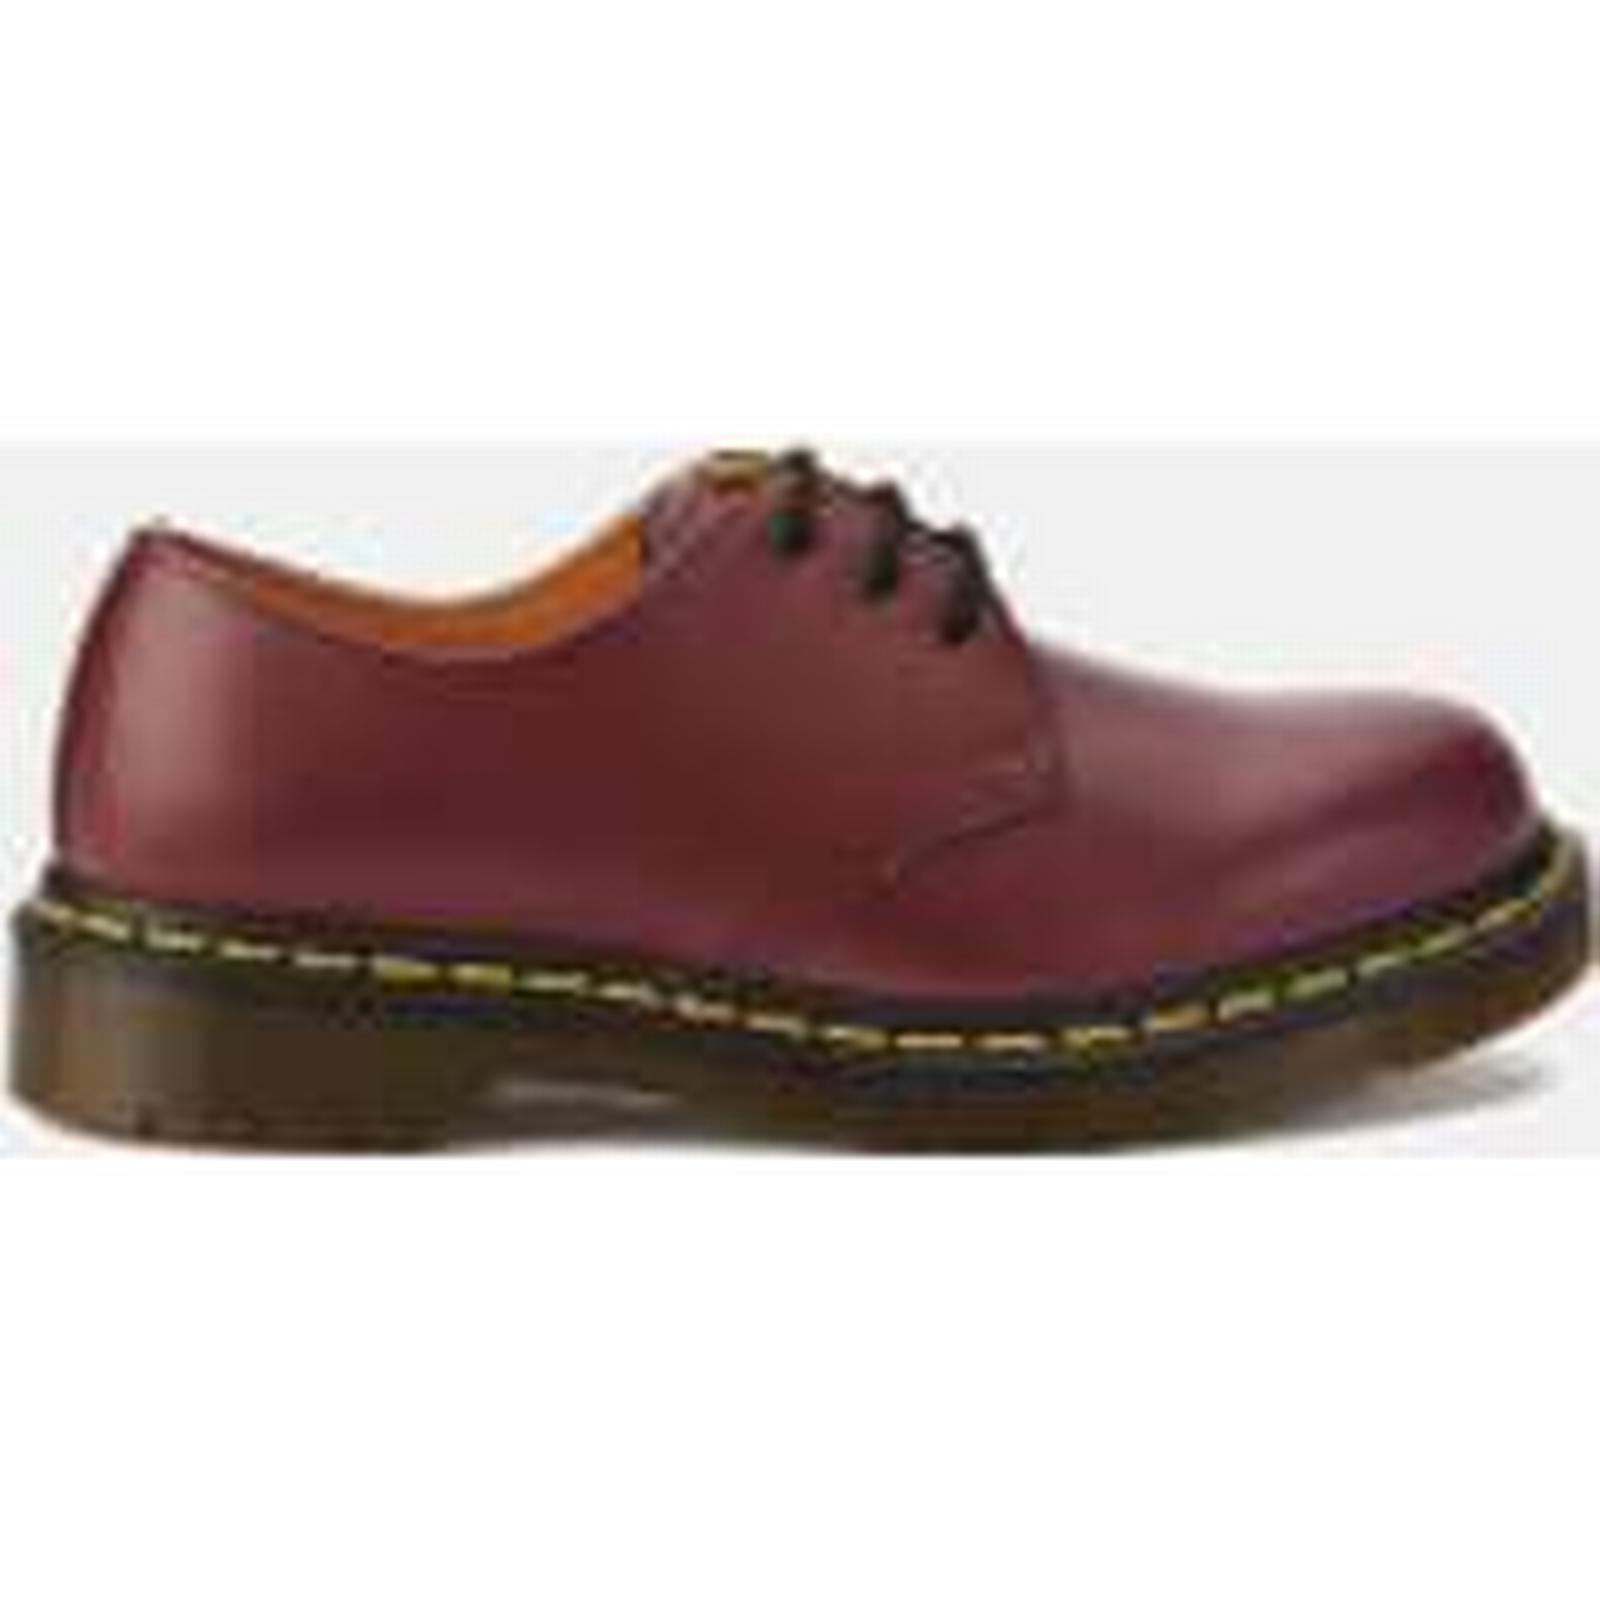 Dr. Martens Shoes 1461 Smooth Leather 3-Eye Shoes Martens - Cherry Red - UK 6 - Red 963134